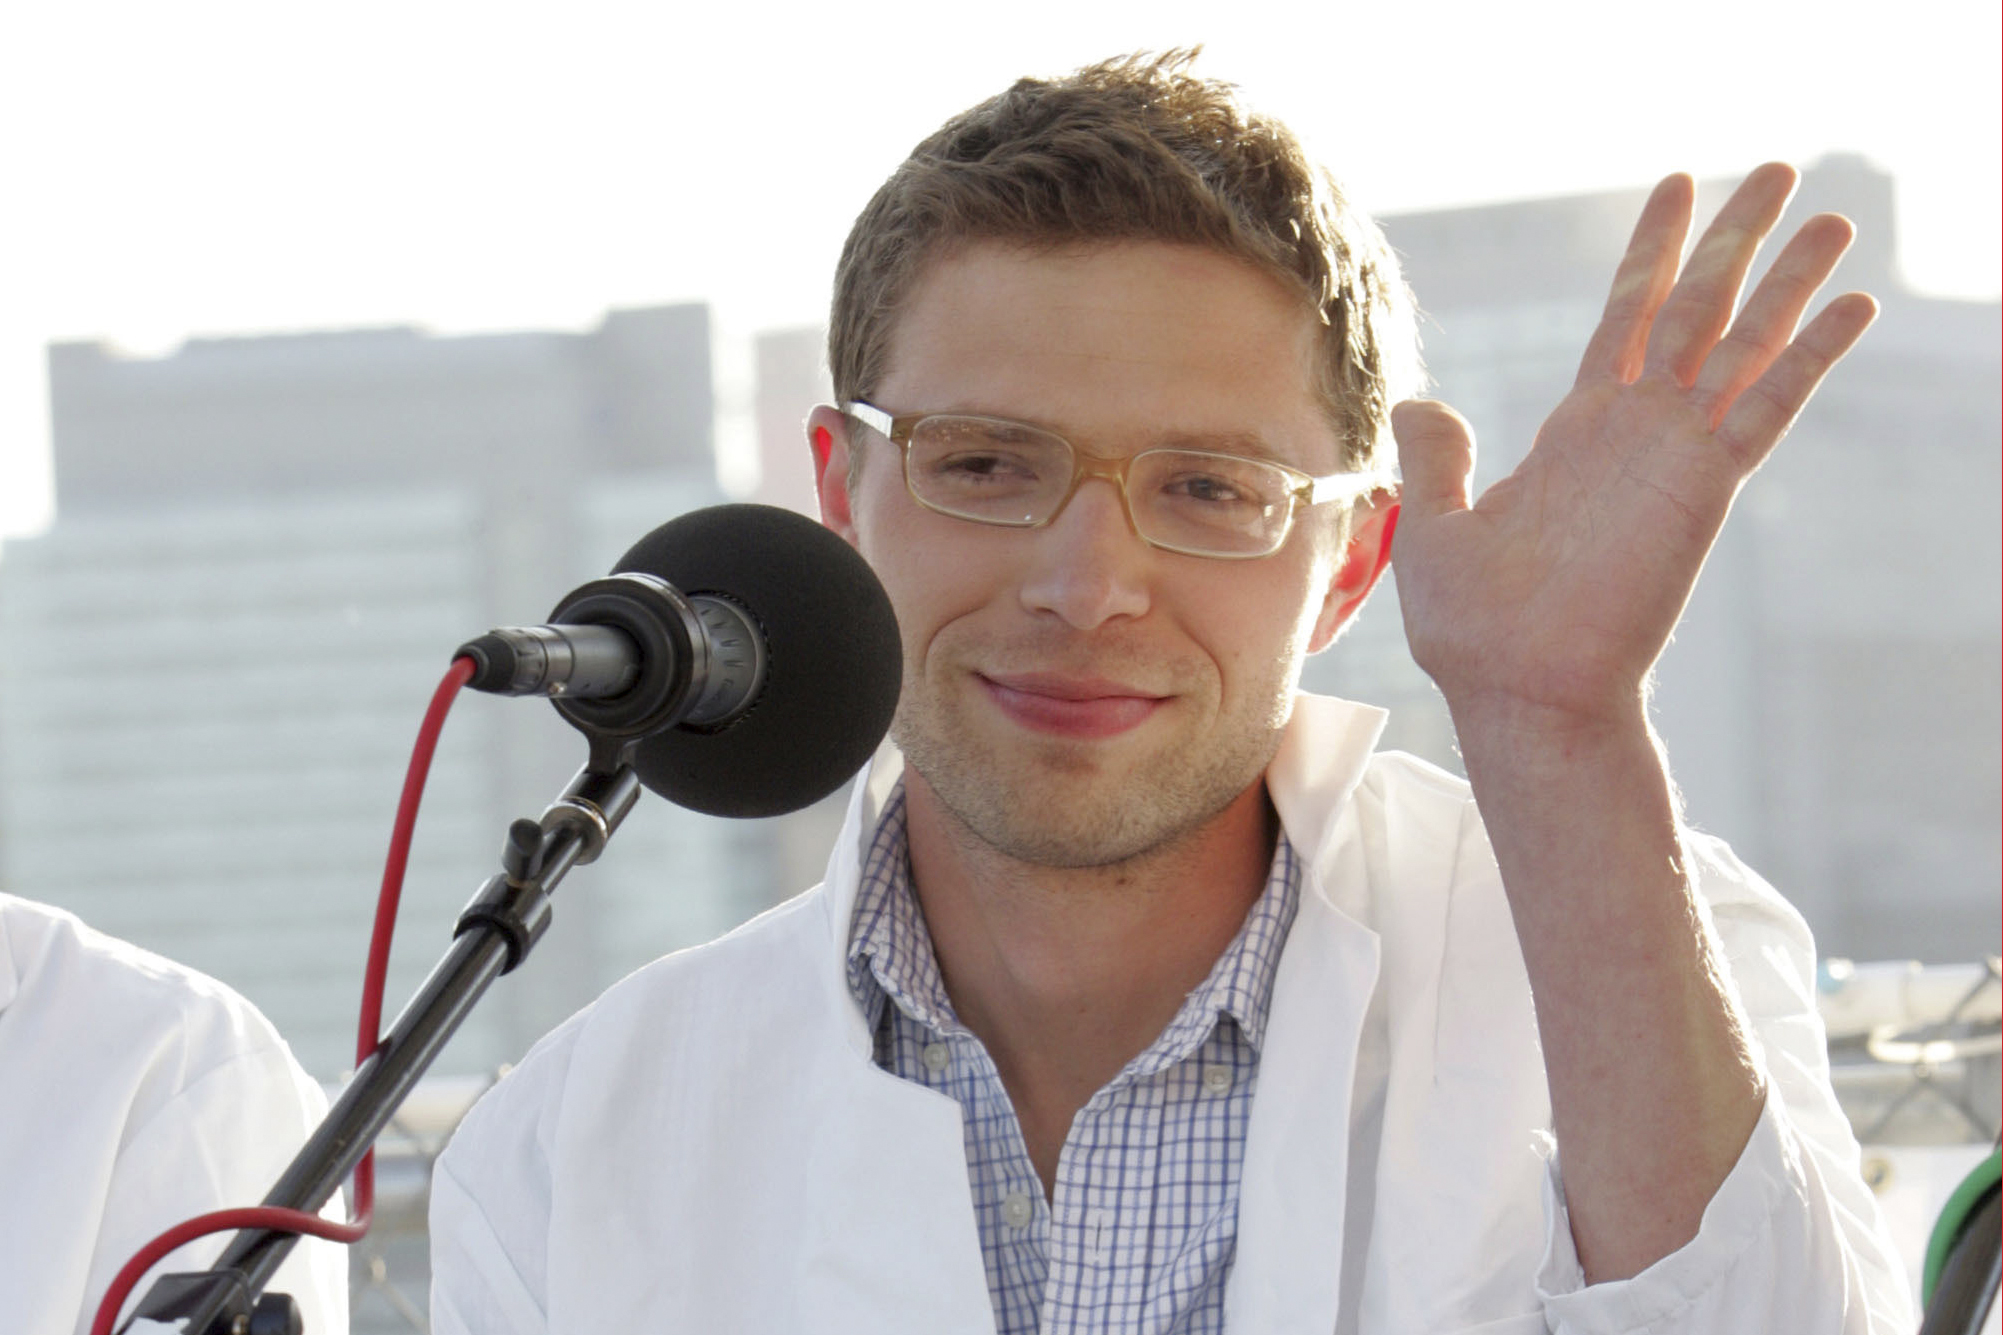 Science writer and contributer to Radio Lab, Jonah Lehrer attends the  You and Your Irrational Brain  panel discussion at Water Taxi Beach in Long Island City in conjunction with the World Science Festival on May 29, 2008 in New York City.